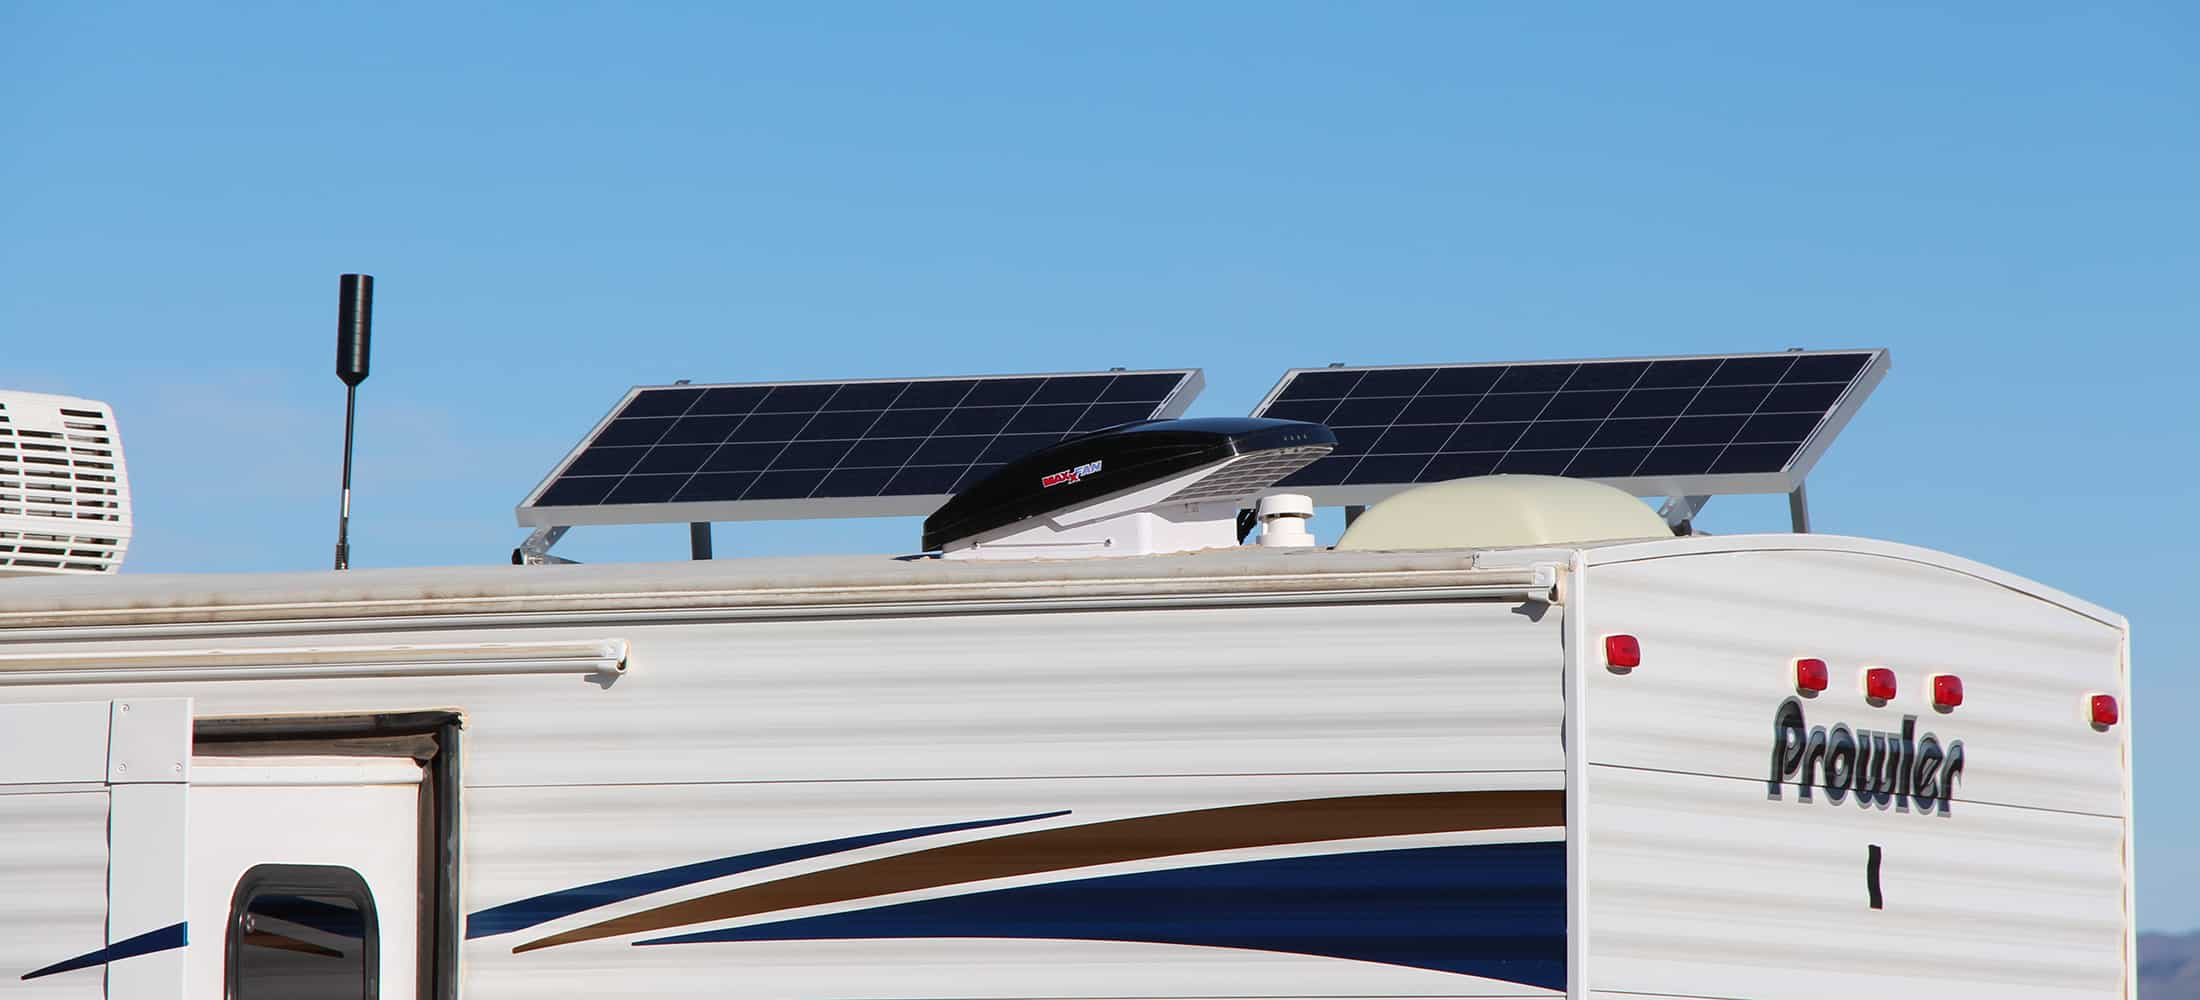 how-big-solar-panel-do-i-need-to-recharge-rv-battery-camping-the-solar-addict